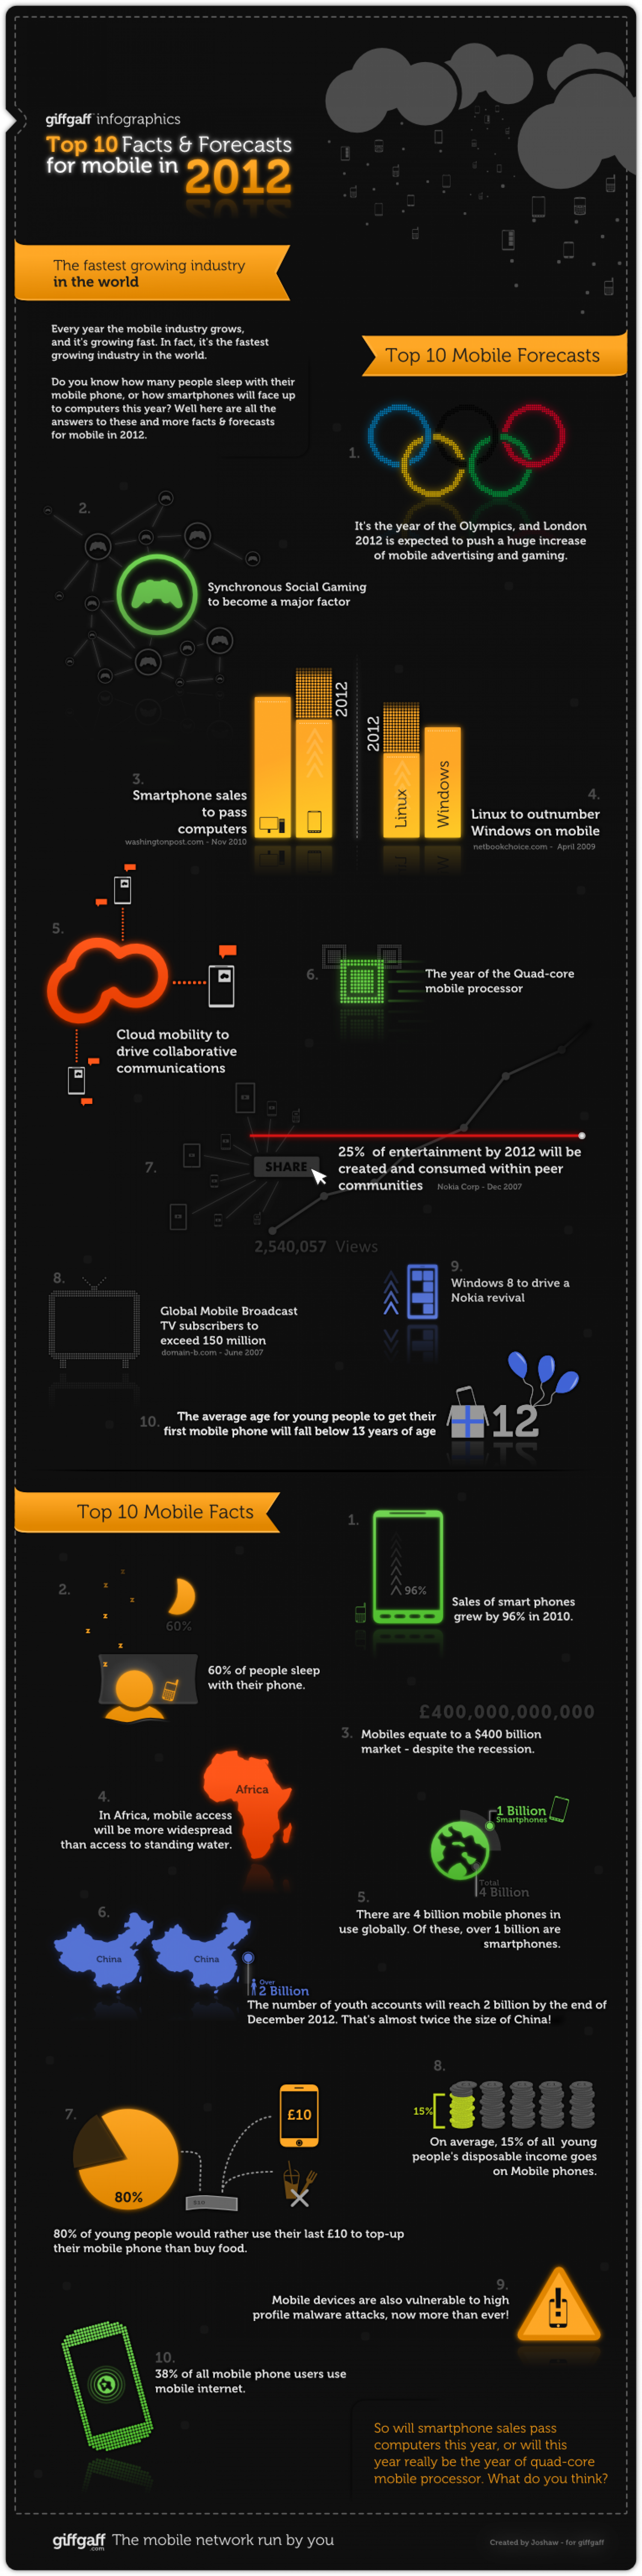 giffgaff Mobile Facts and Forecasts 2012  Infographic